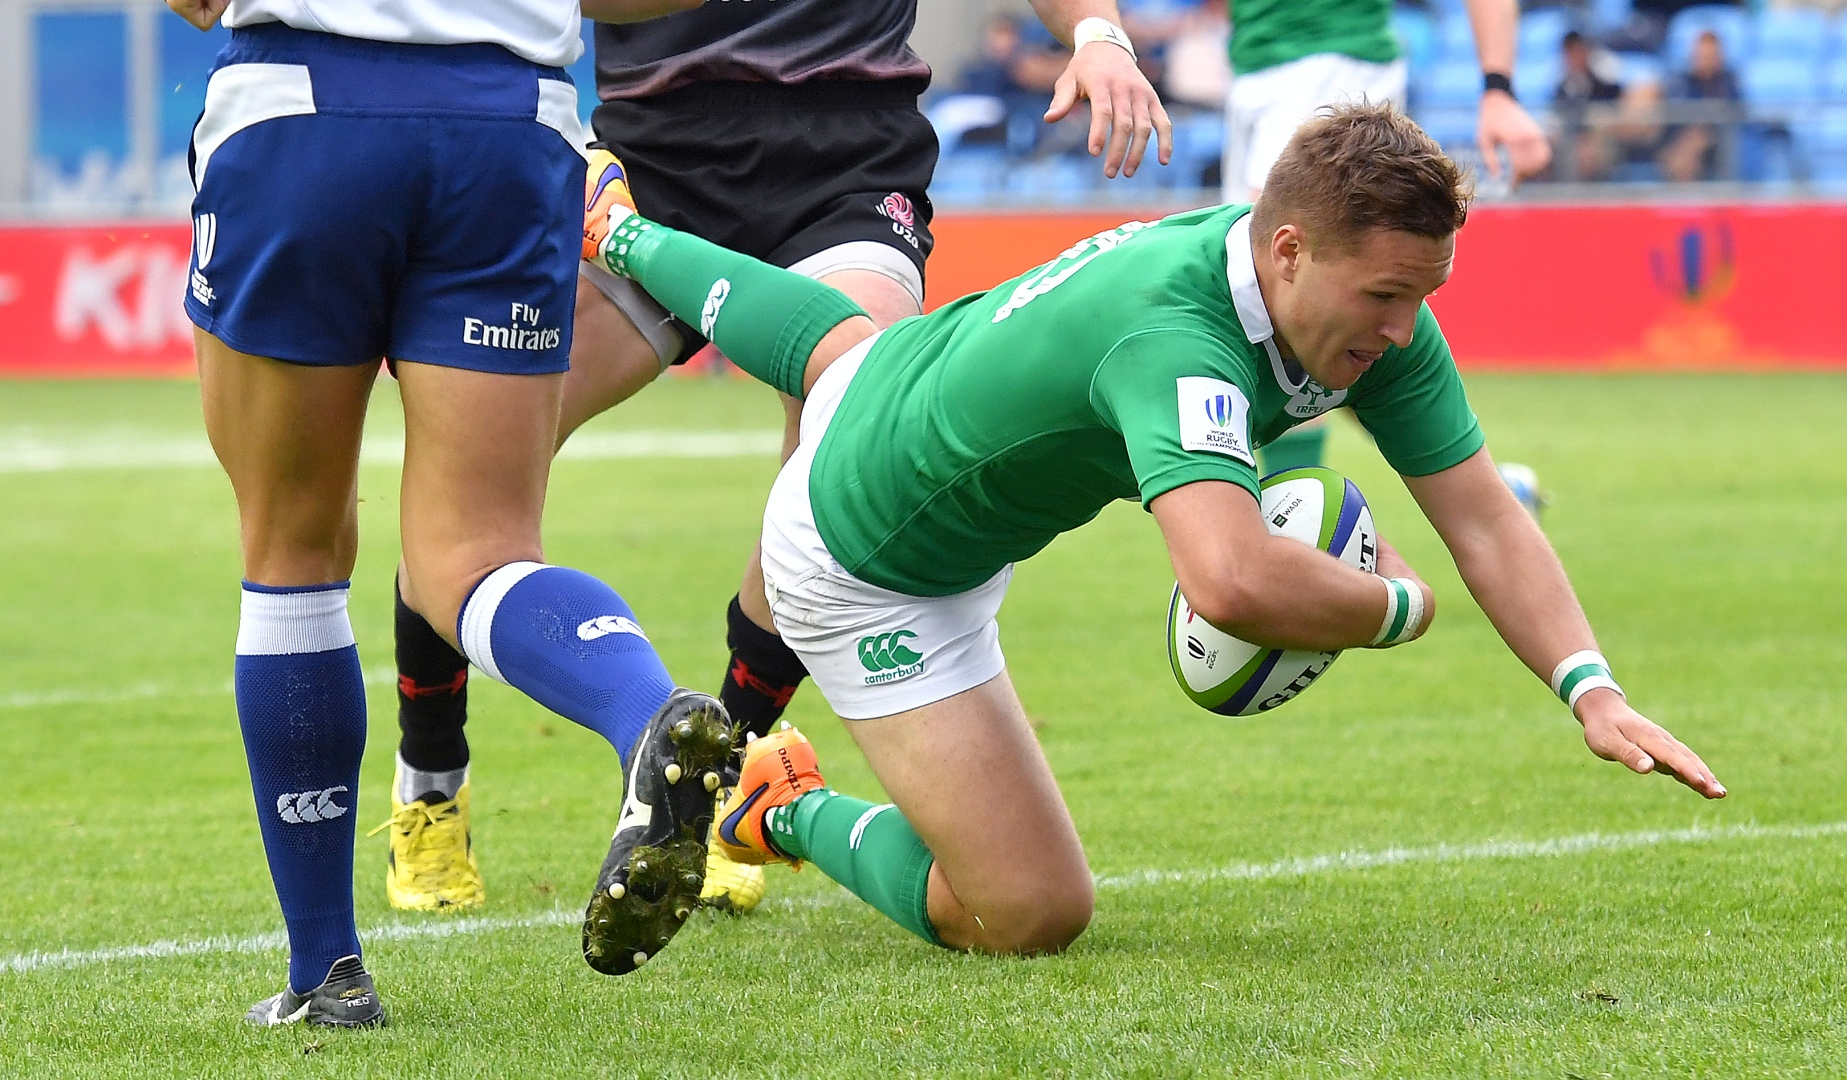 England and Ireland starlets through to semi-finals